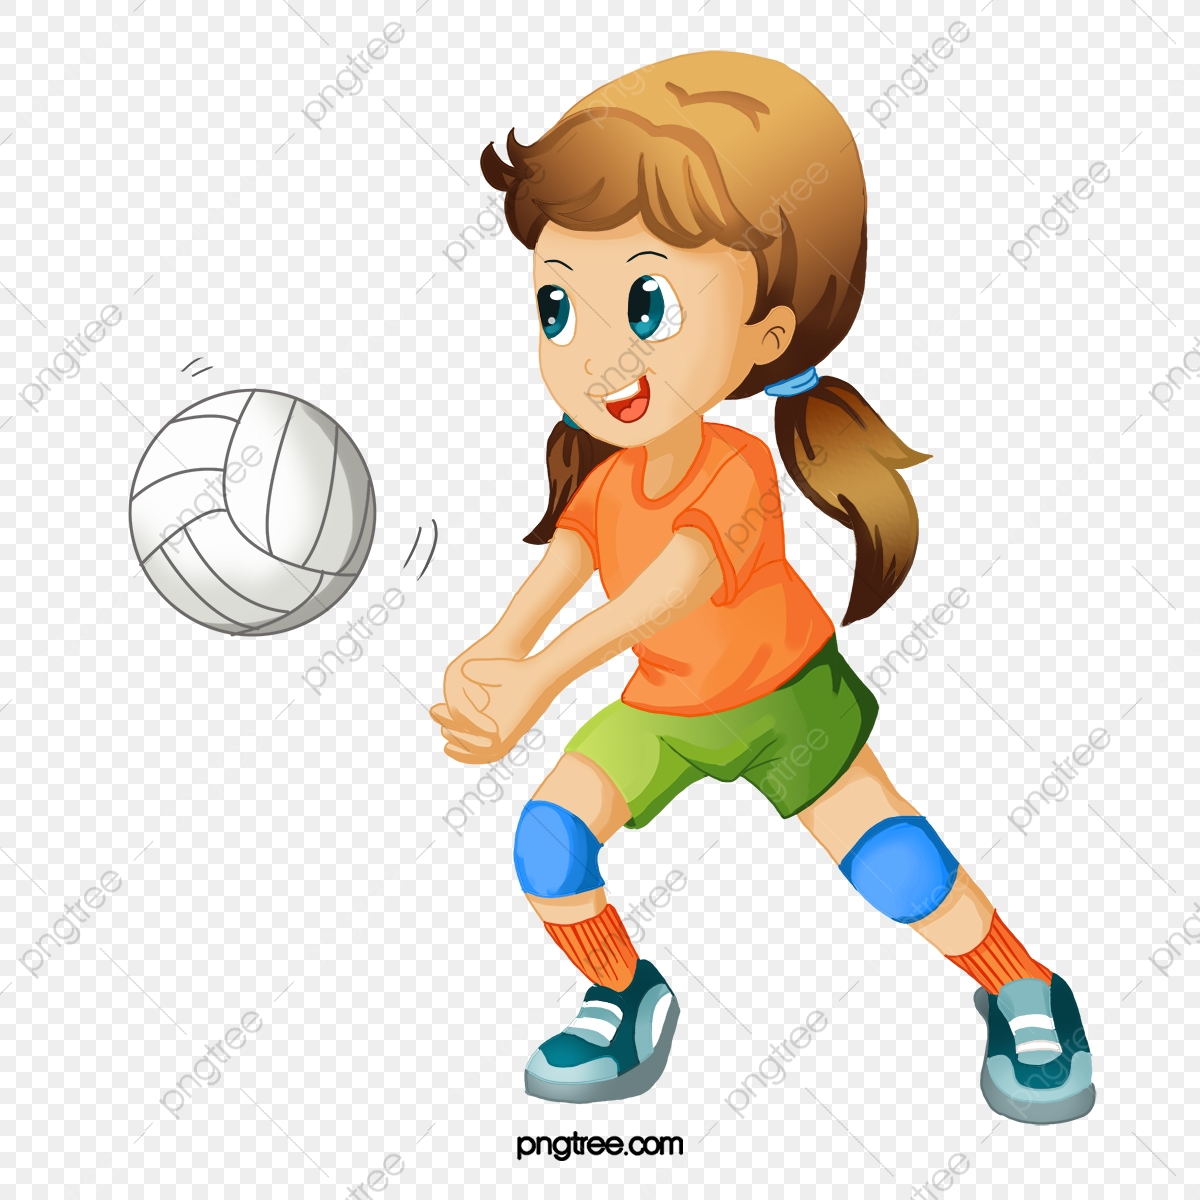 Volleyball playing. Hand painted cartoon players